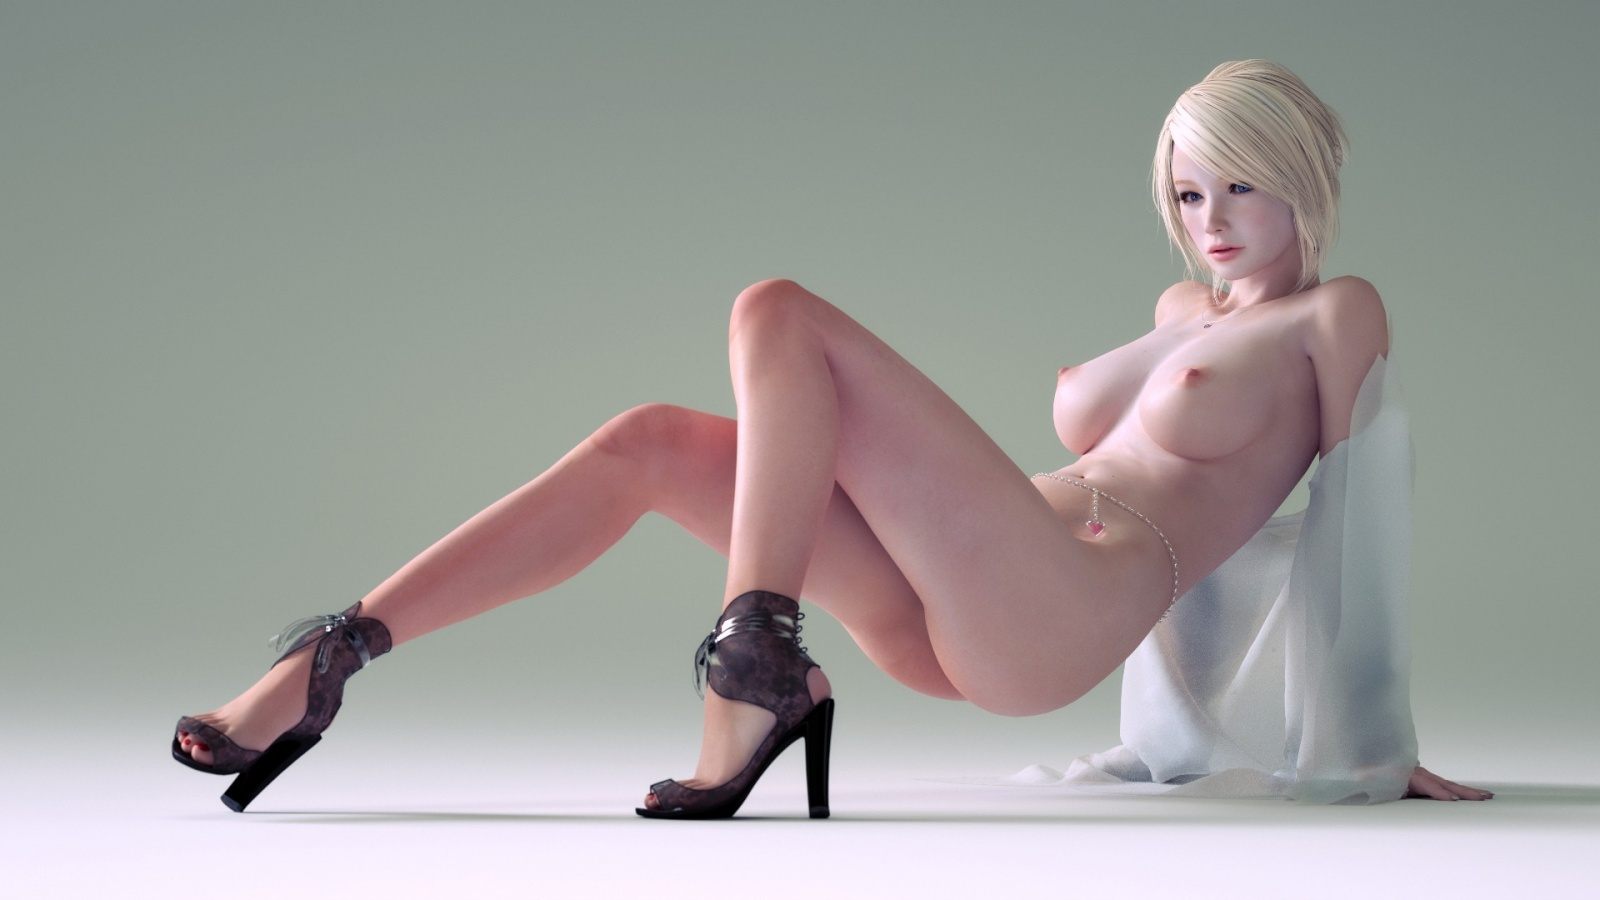 hot blonde girl erotic desktop wallpaper 1600x900 nude models and